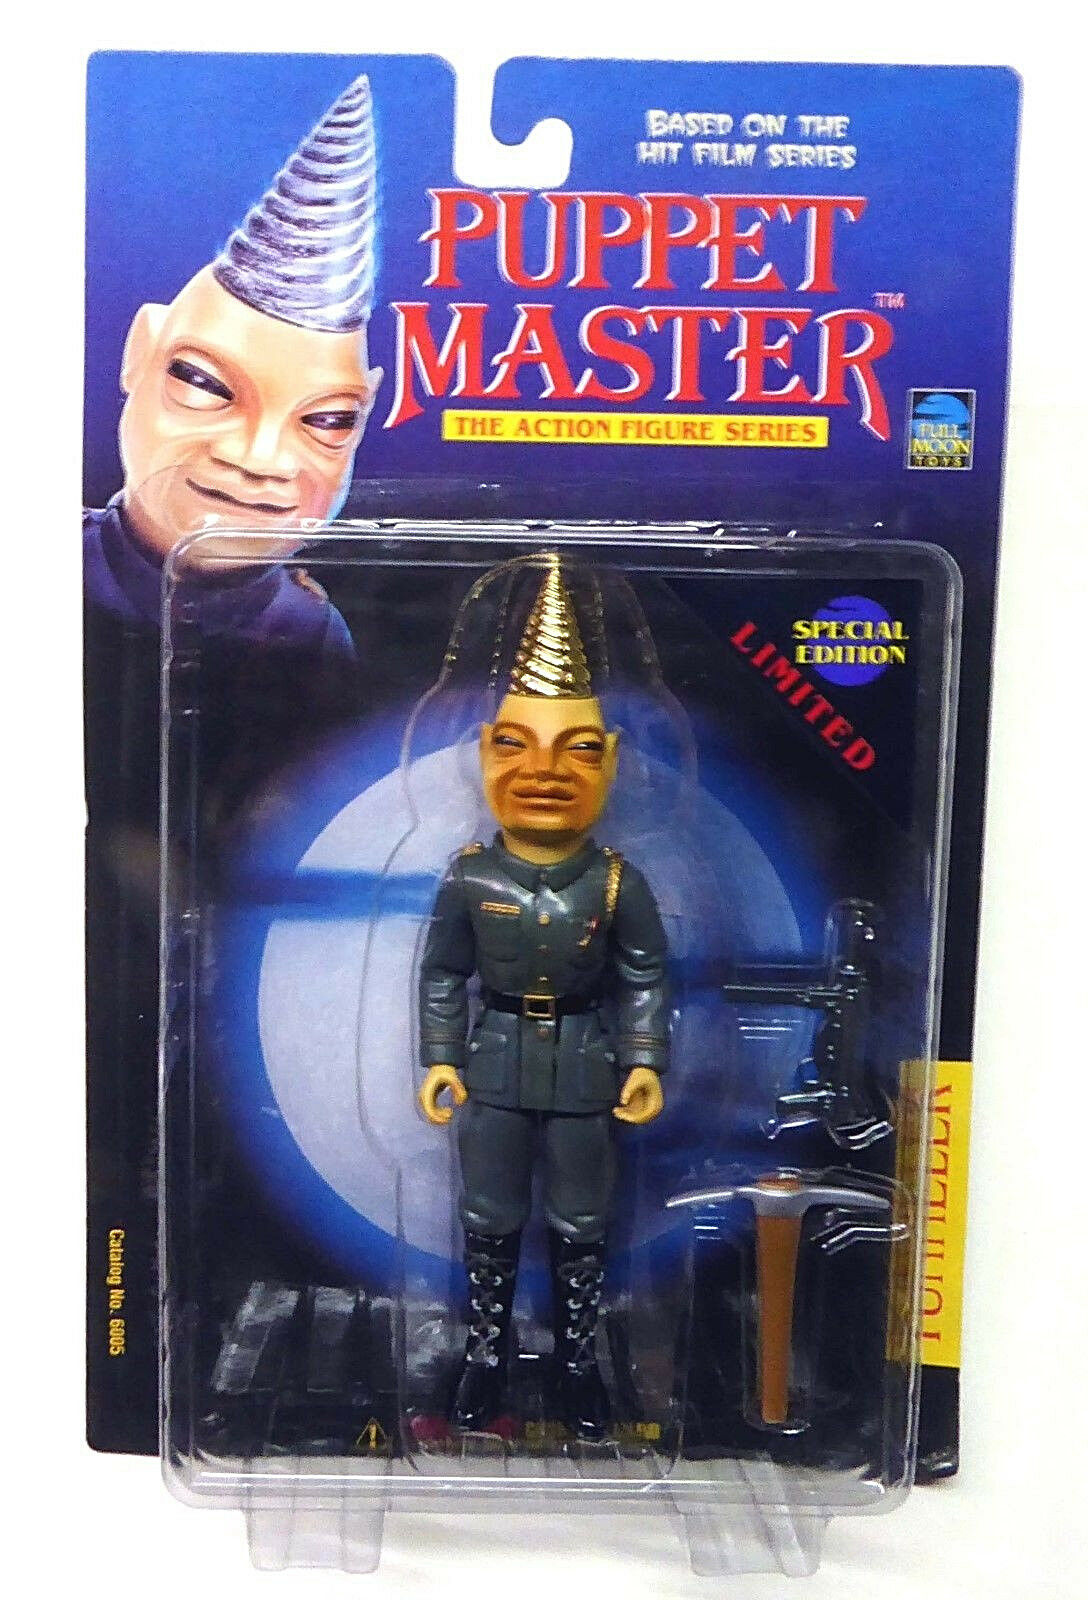 Puppet Master Tunneler Special Limited Edition Gold Full moon Toys   6005 1997